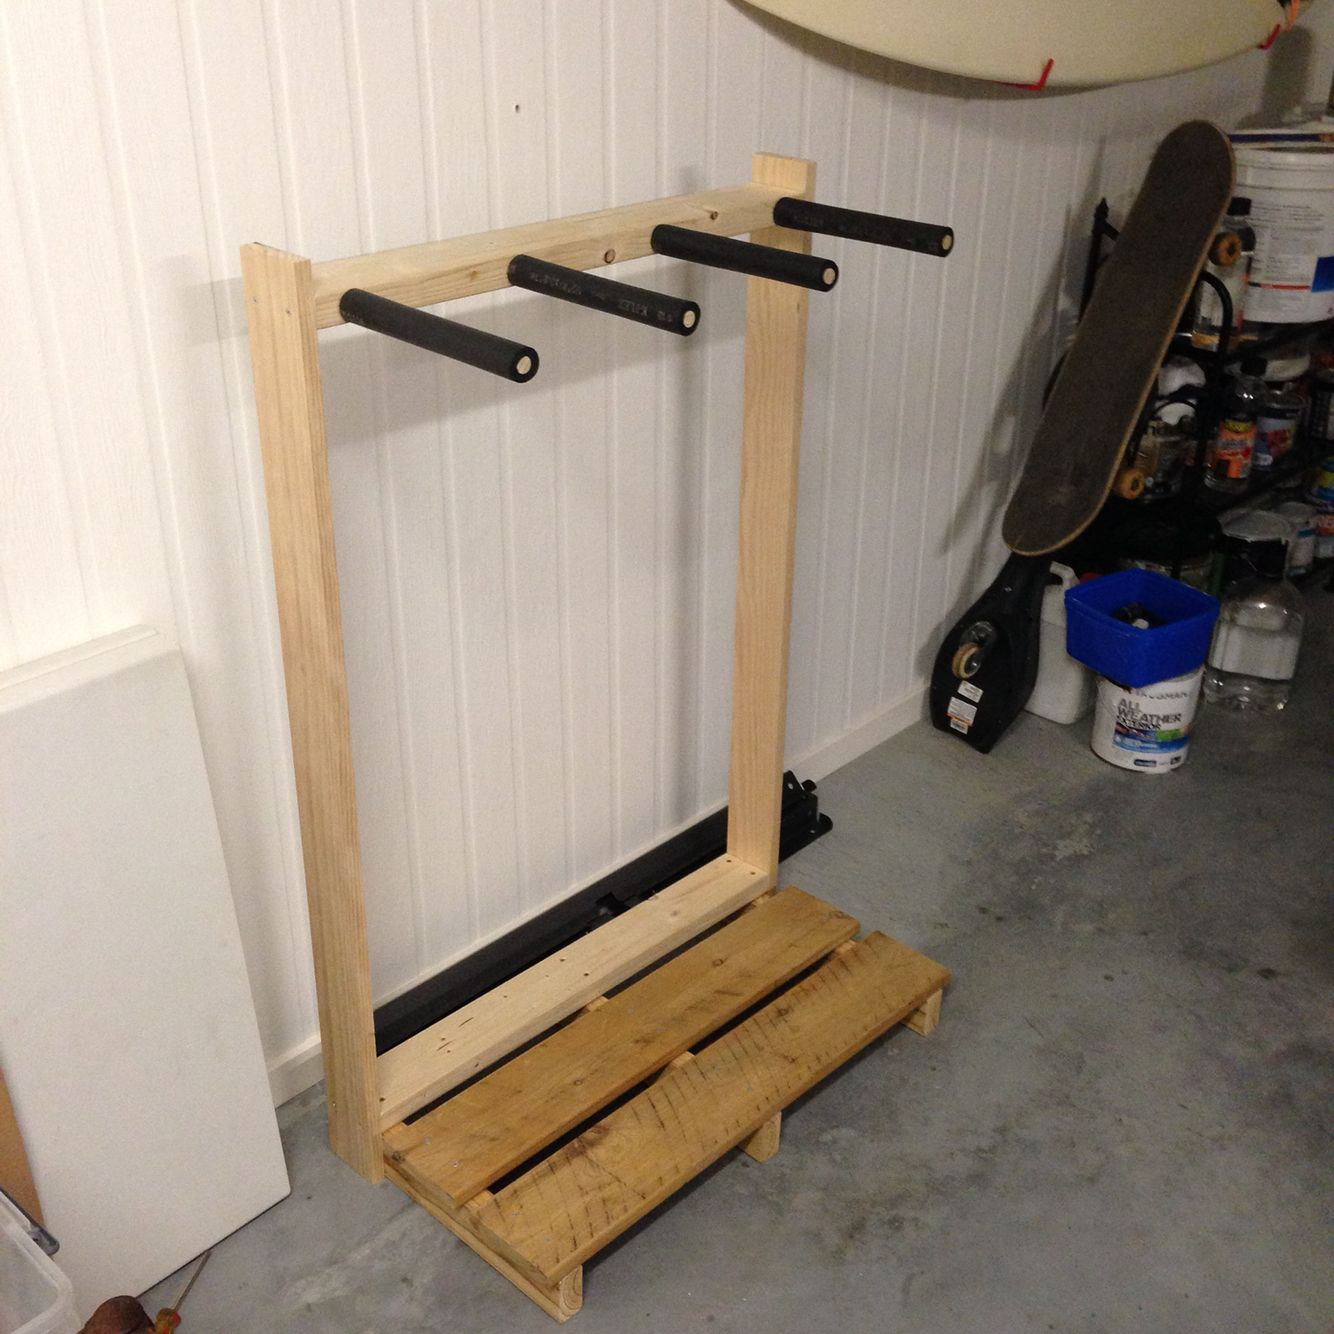 Pallet Surfboard Rack An Easy Project That Will Help Protect Your Boards And Organise Them